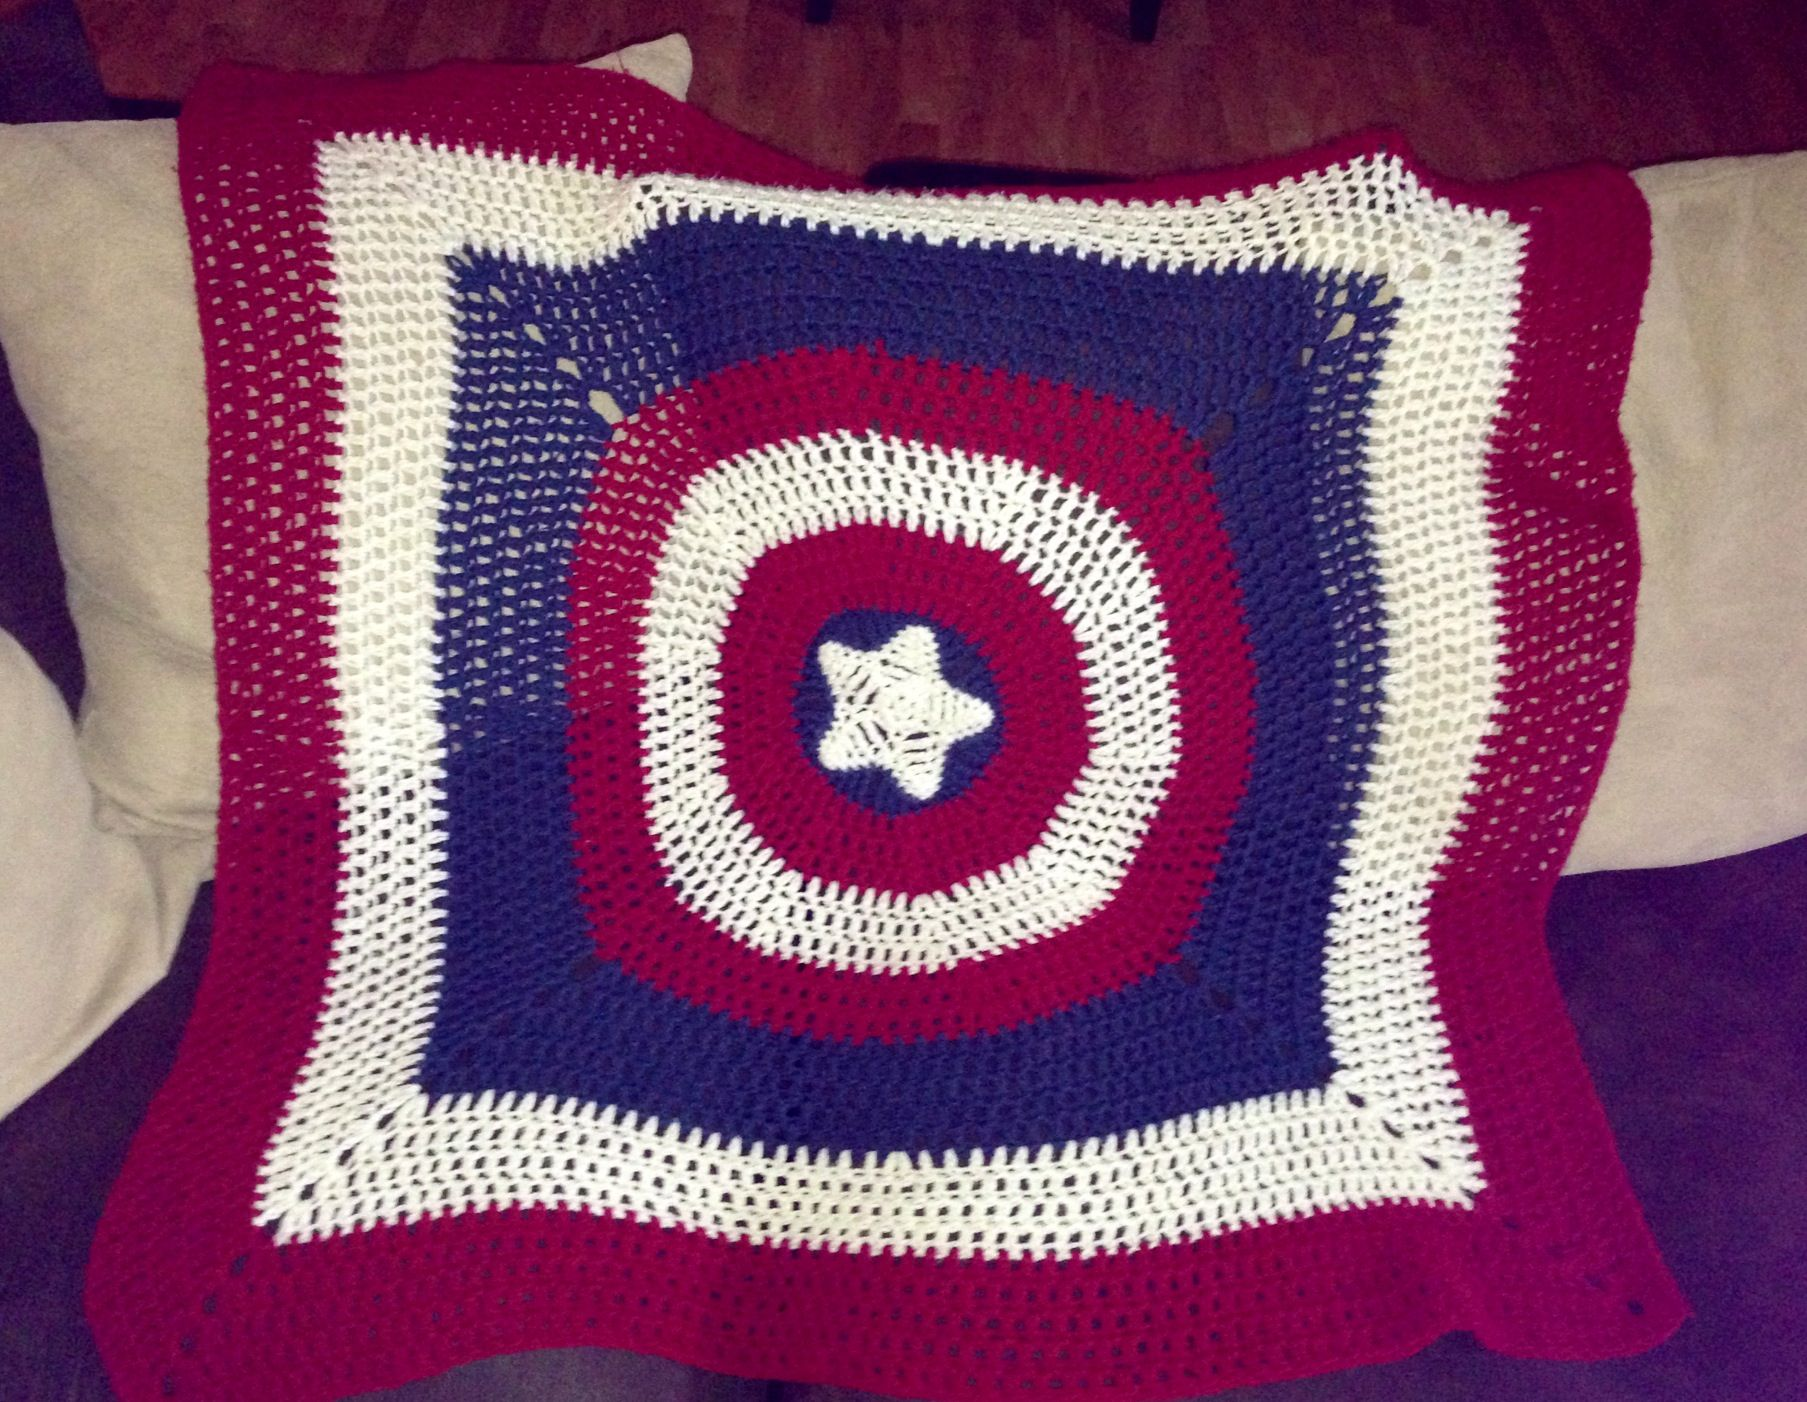 Captain America Knitting Pattern : Captain America crochet blanket knitting Pinterest